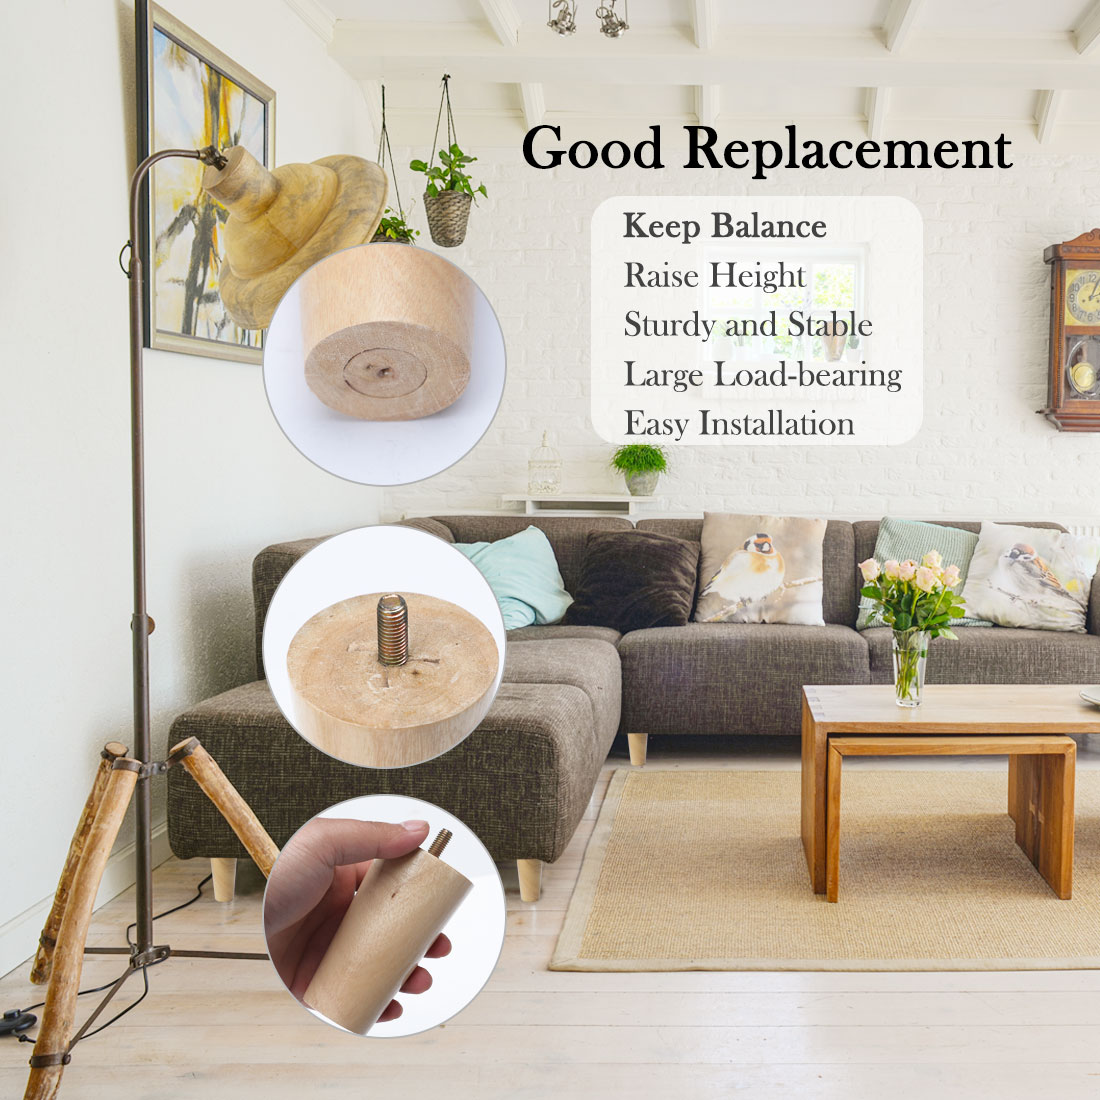 """6"""" Round Solid Wood Furniture Leg Table Chair Feet Adjuster Replacement Set of 8 - image 1 de 7"""